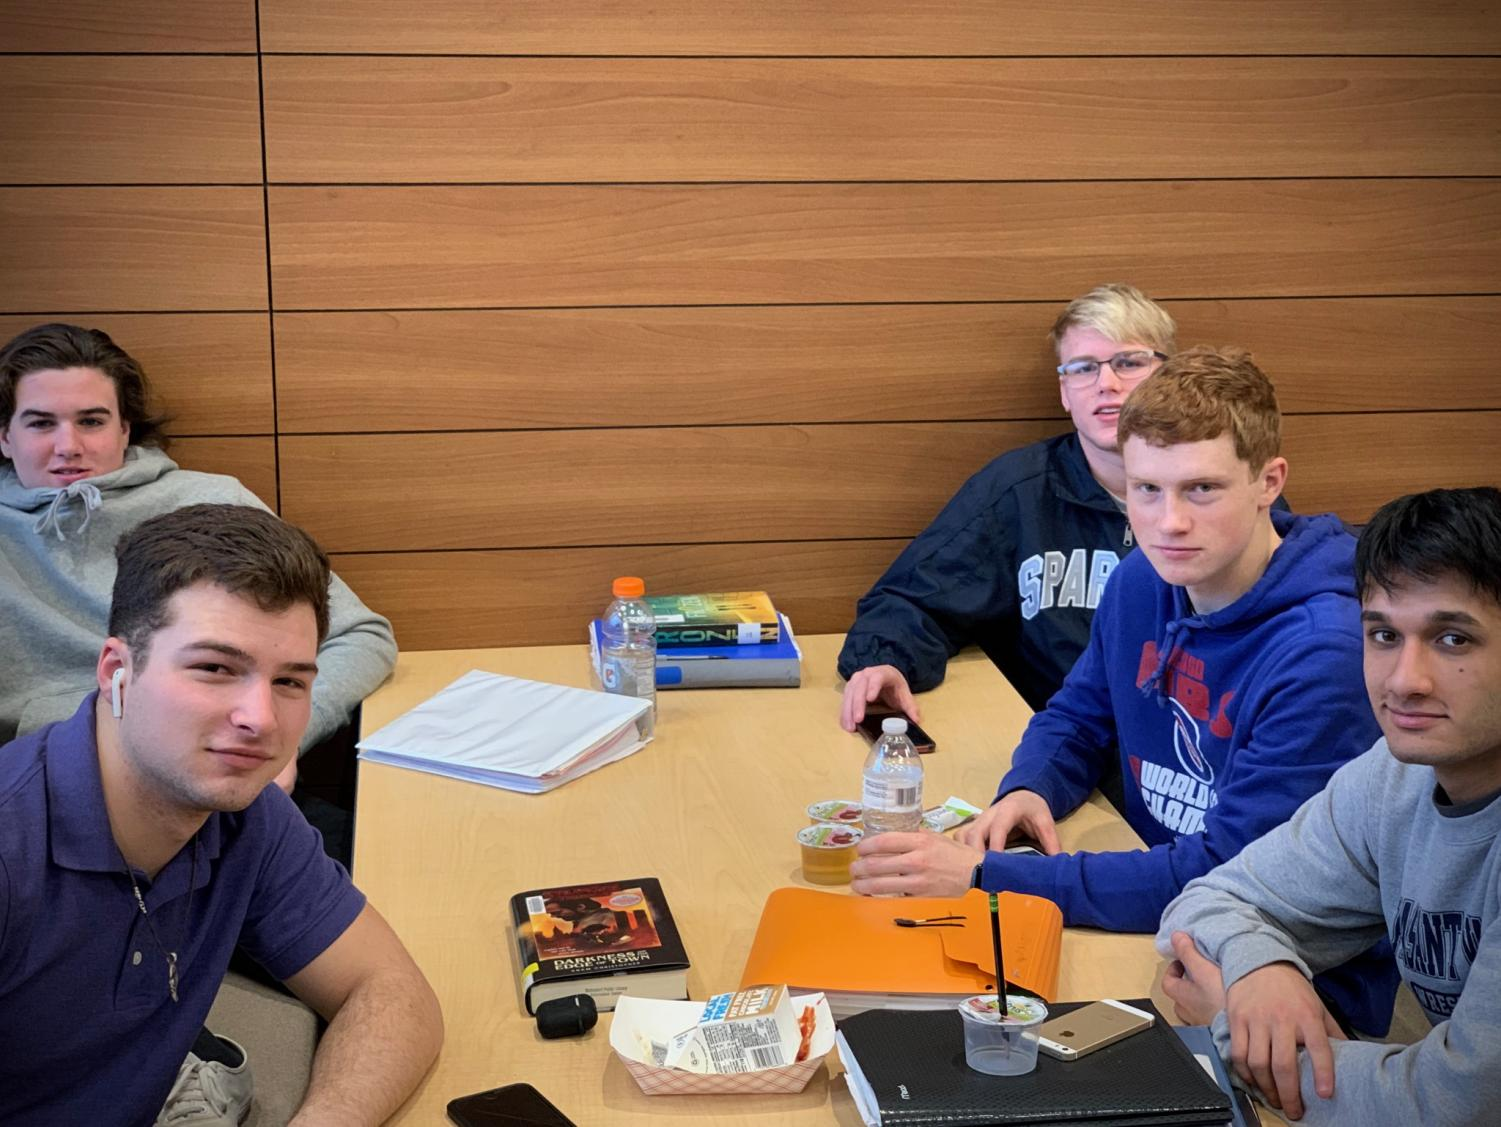 (Left to Right, Front to Back) Braxton Farmer, Brendan Hills, Shubahm Chauhan, Matt Dresselhaus, and Eli Loyd hang out in study hall. PV's caucasian to noncaucasian ratio is similar to the group of students in this photo -- around 4:1.